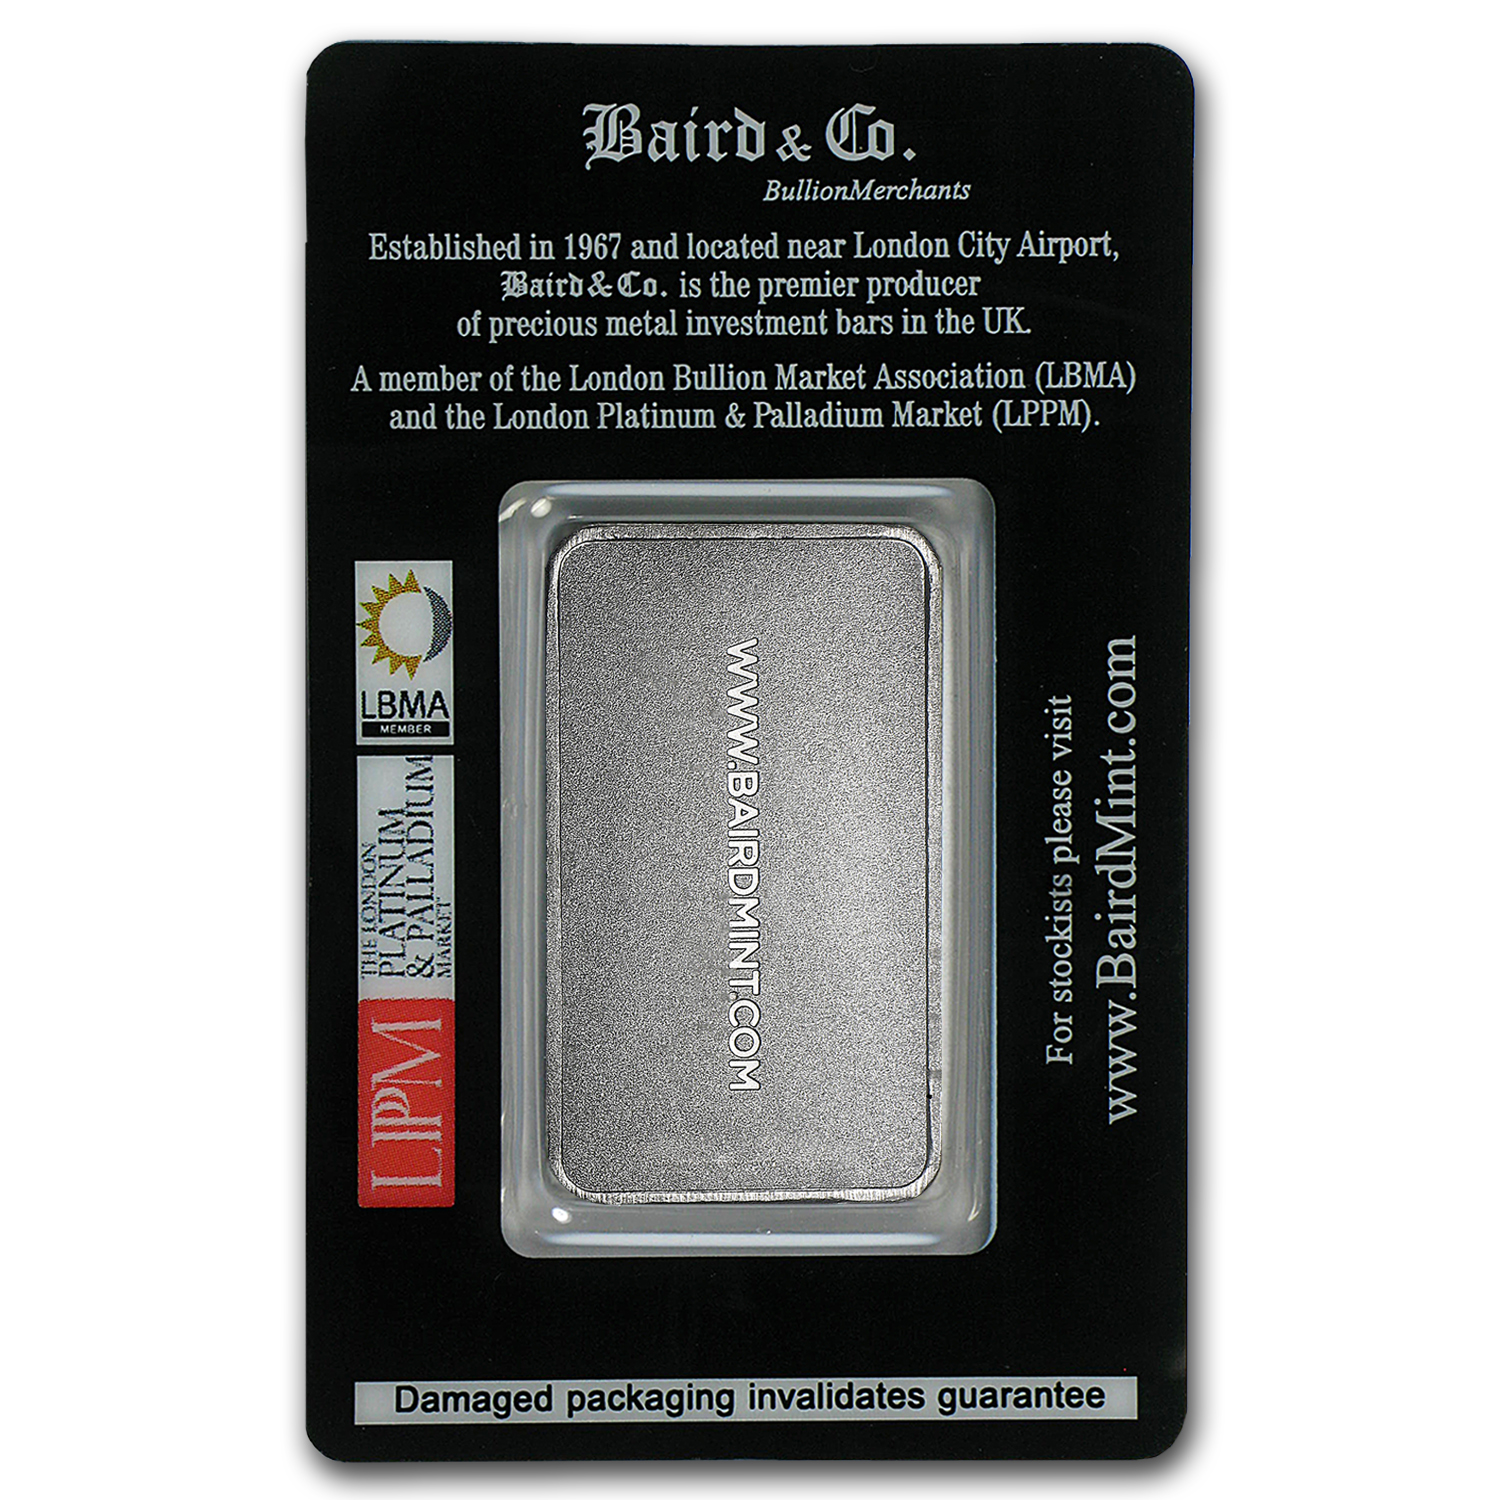 1 oz Platinum Bar - Baird & Co. (.999+ Fine, No Assay)